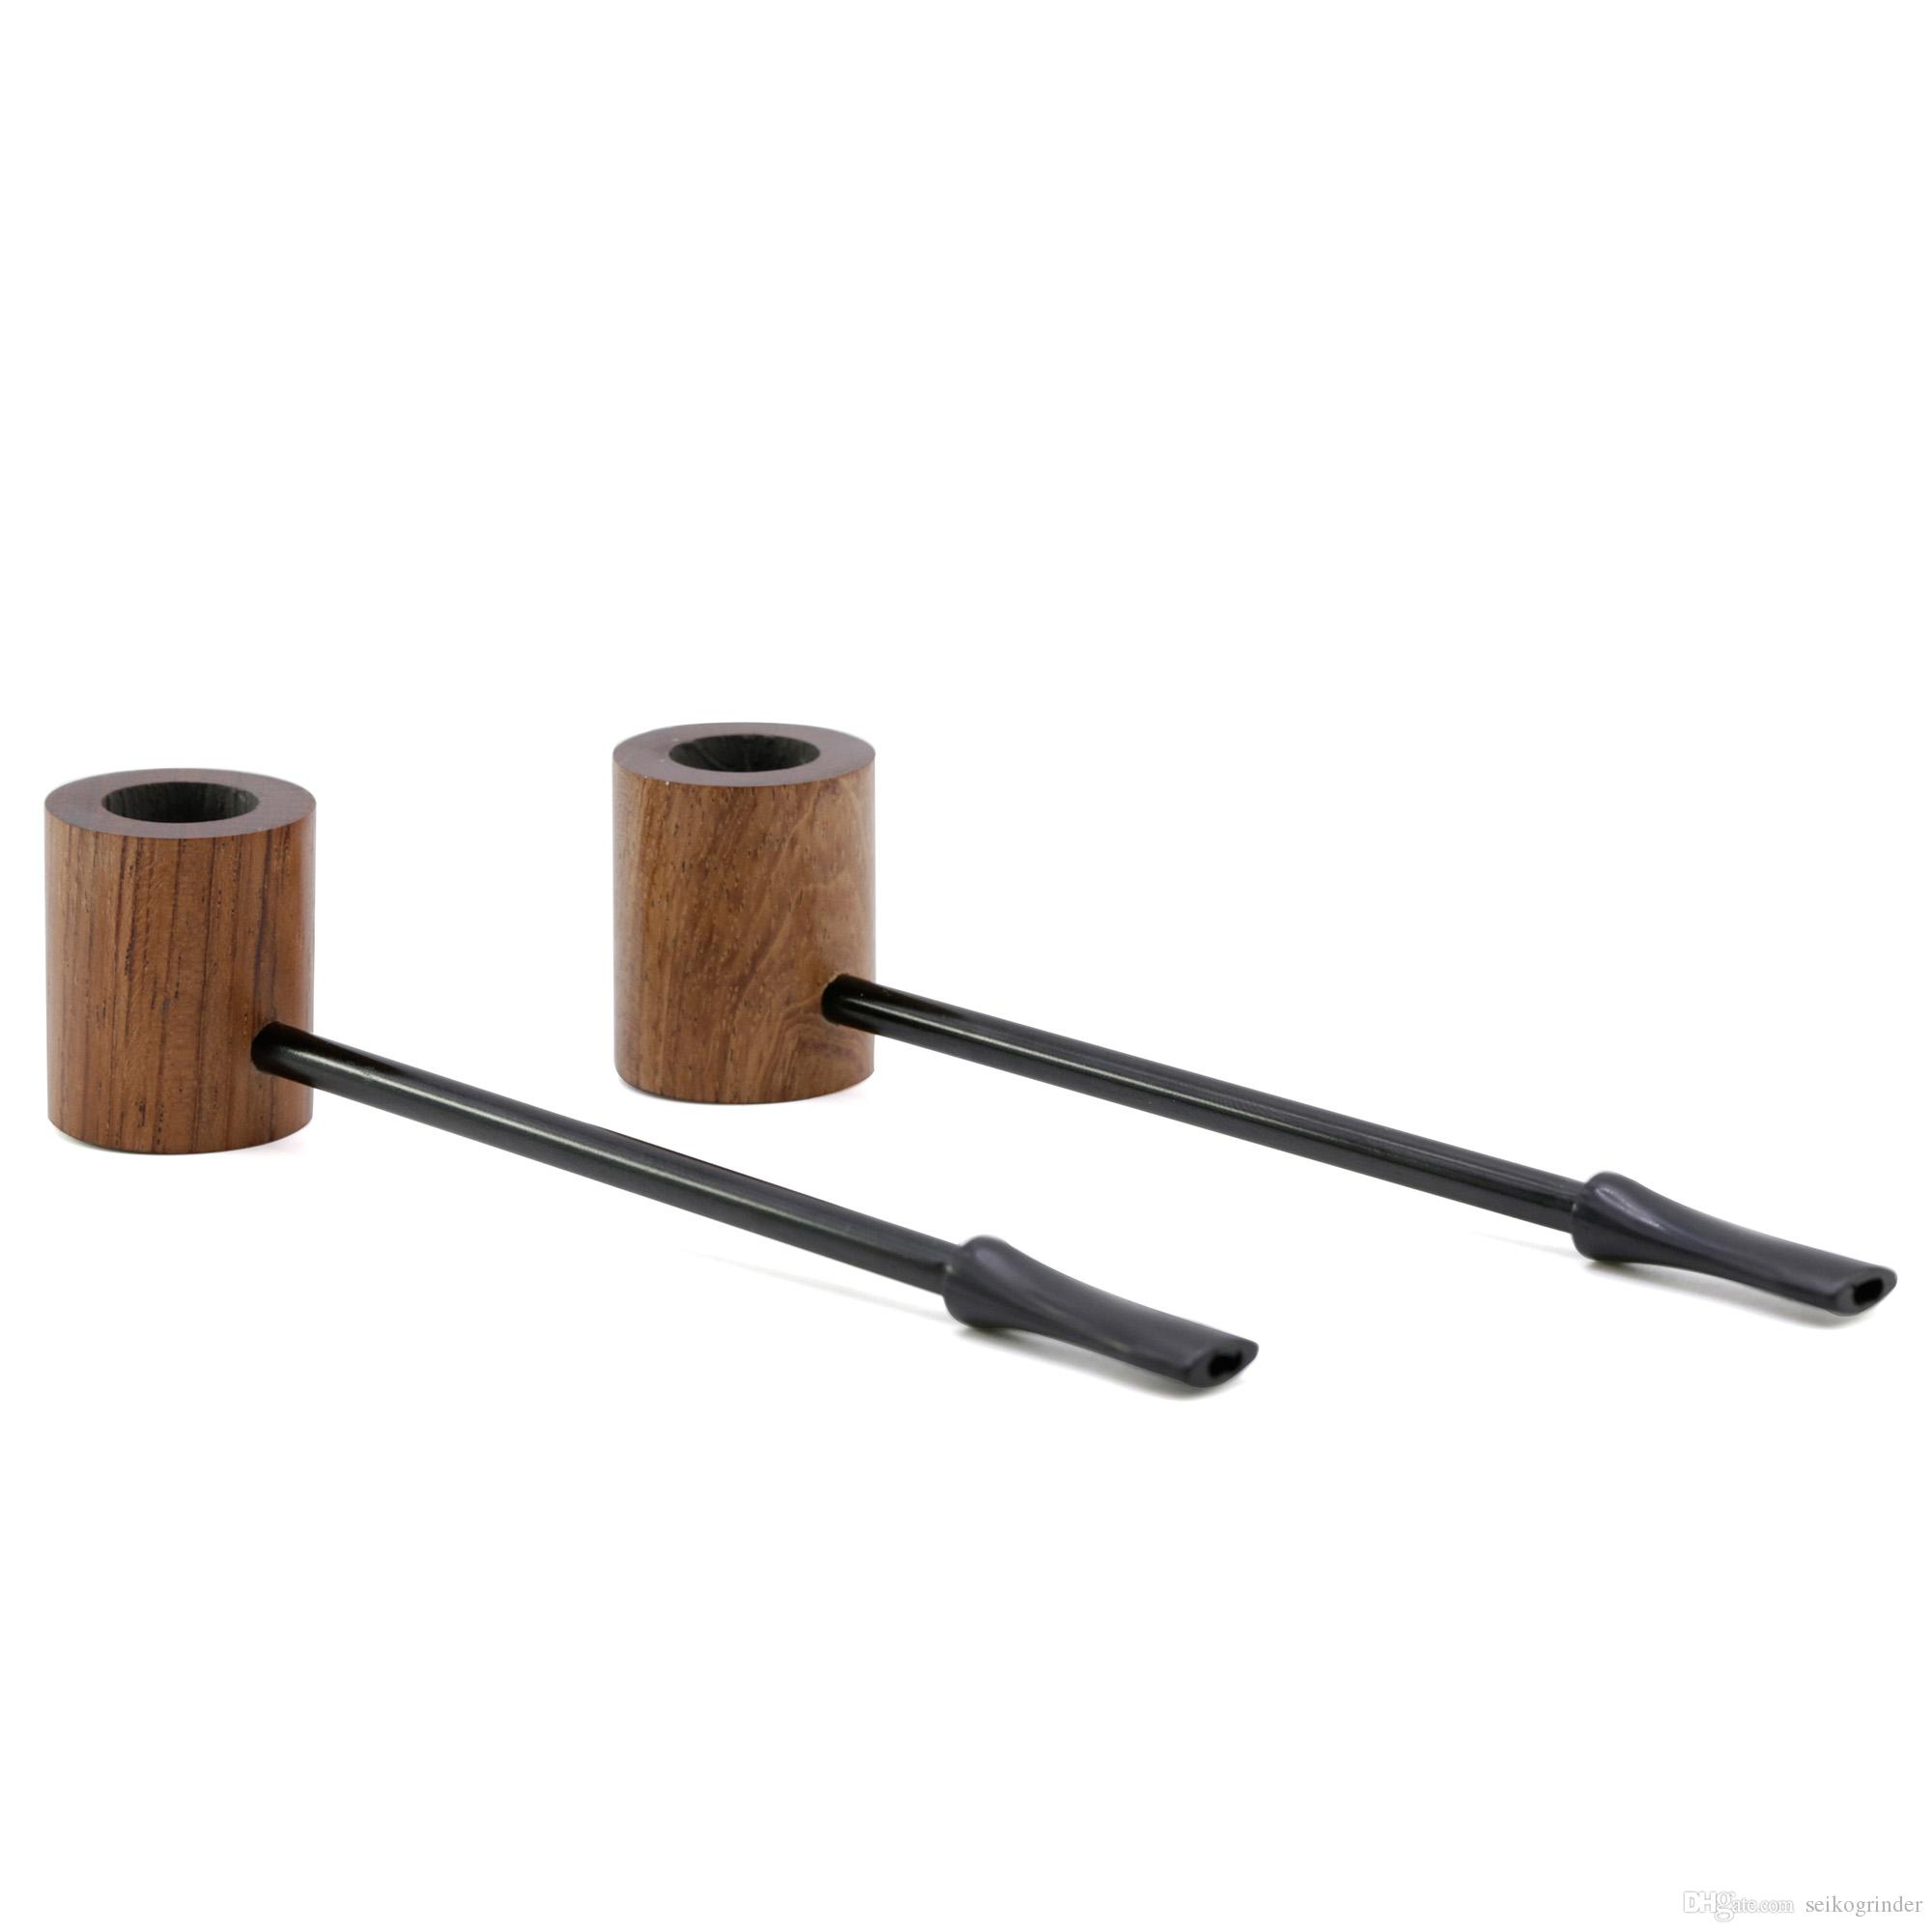 Free Shipping To Usa Length 15cm Straight Rosewood Wooden Smoking Pipe Long Wood Tobacco Pipes For Dry Herb